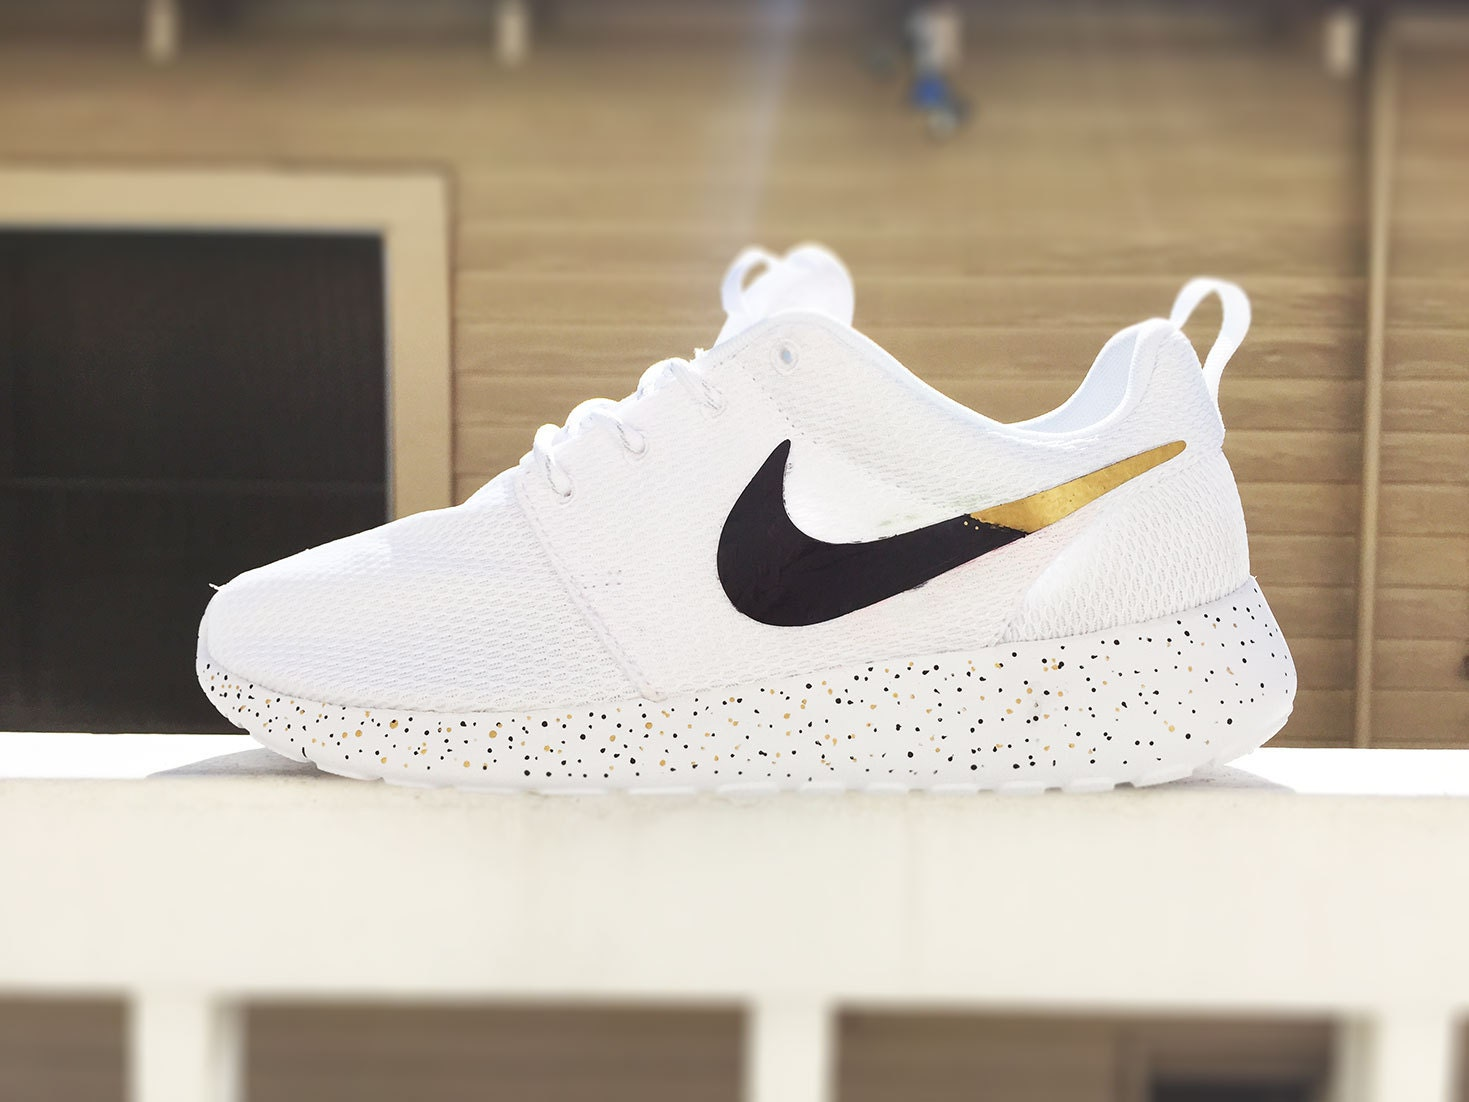 Custom Nike Roshe Run sneakers for women All white Black and